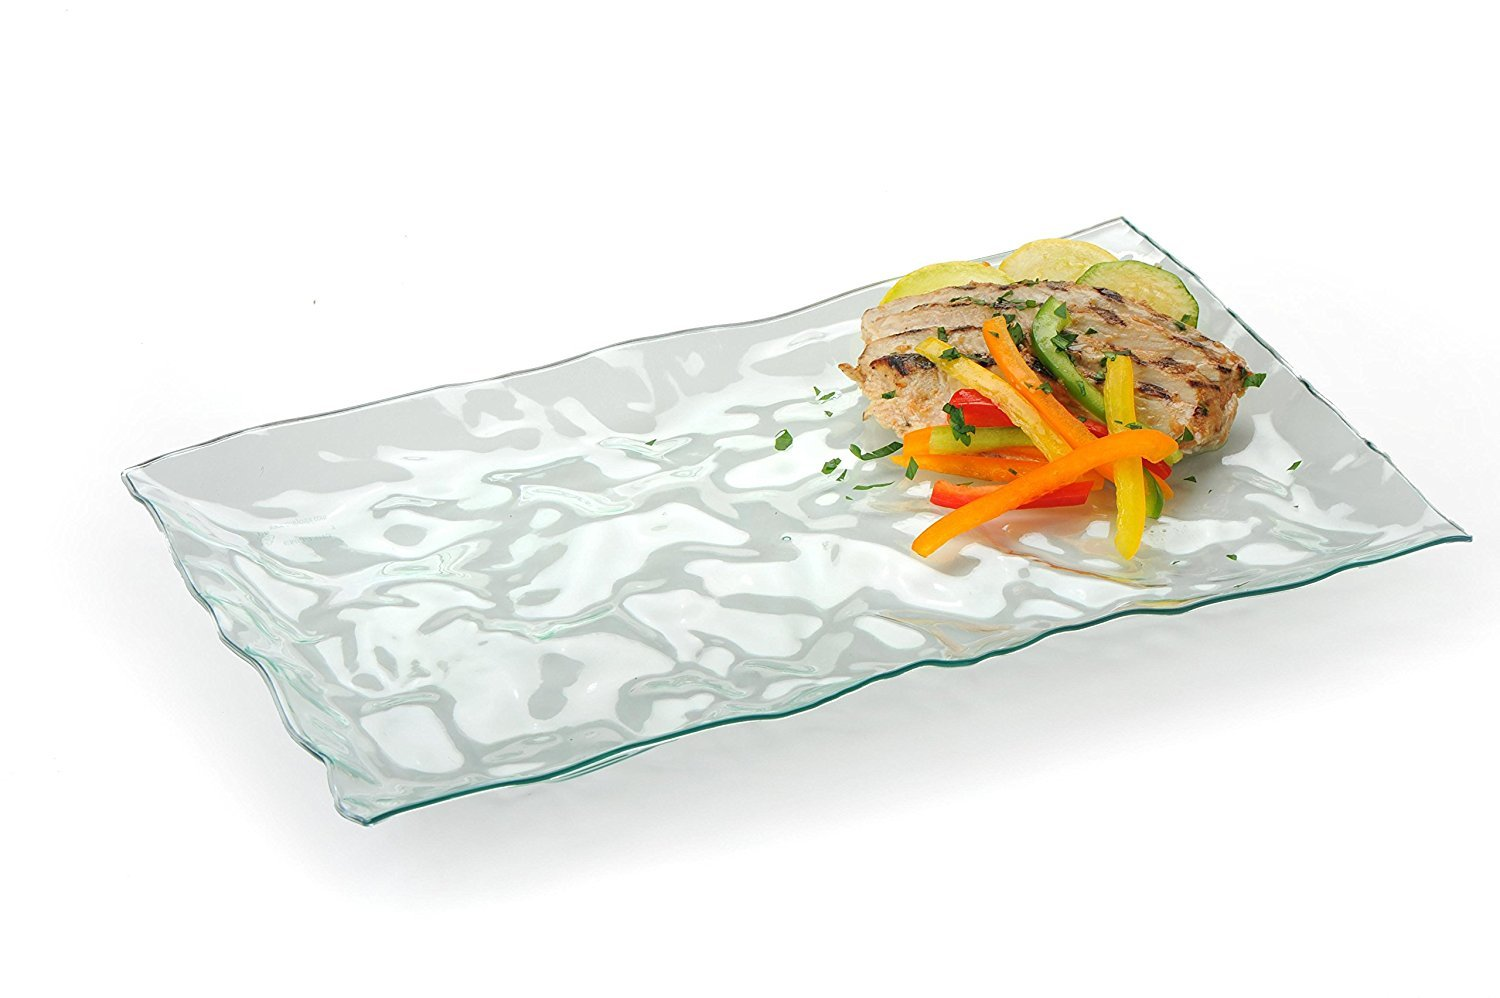 5 Rectangle Heavy Duty Plastic Serving Tray 8.5'' x 13.5'' Serving Platters Food Tray Decorative Serving Trays Wedding Platter Party Trays Clear/Green